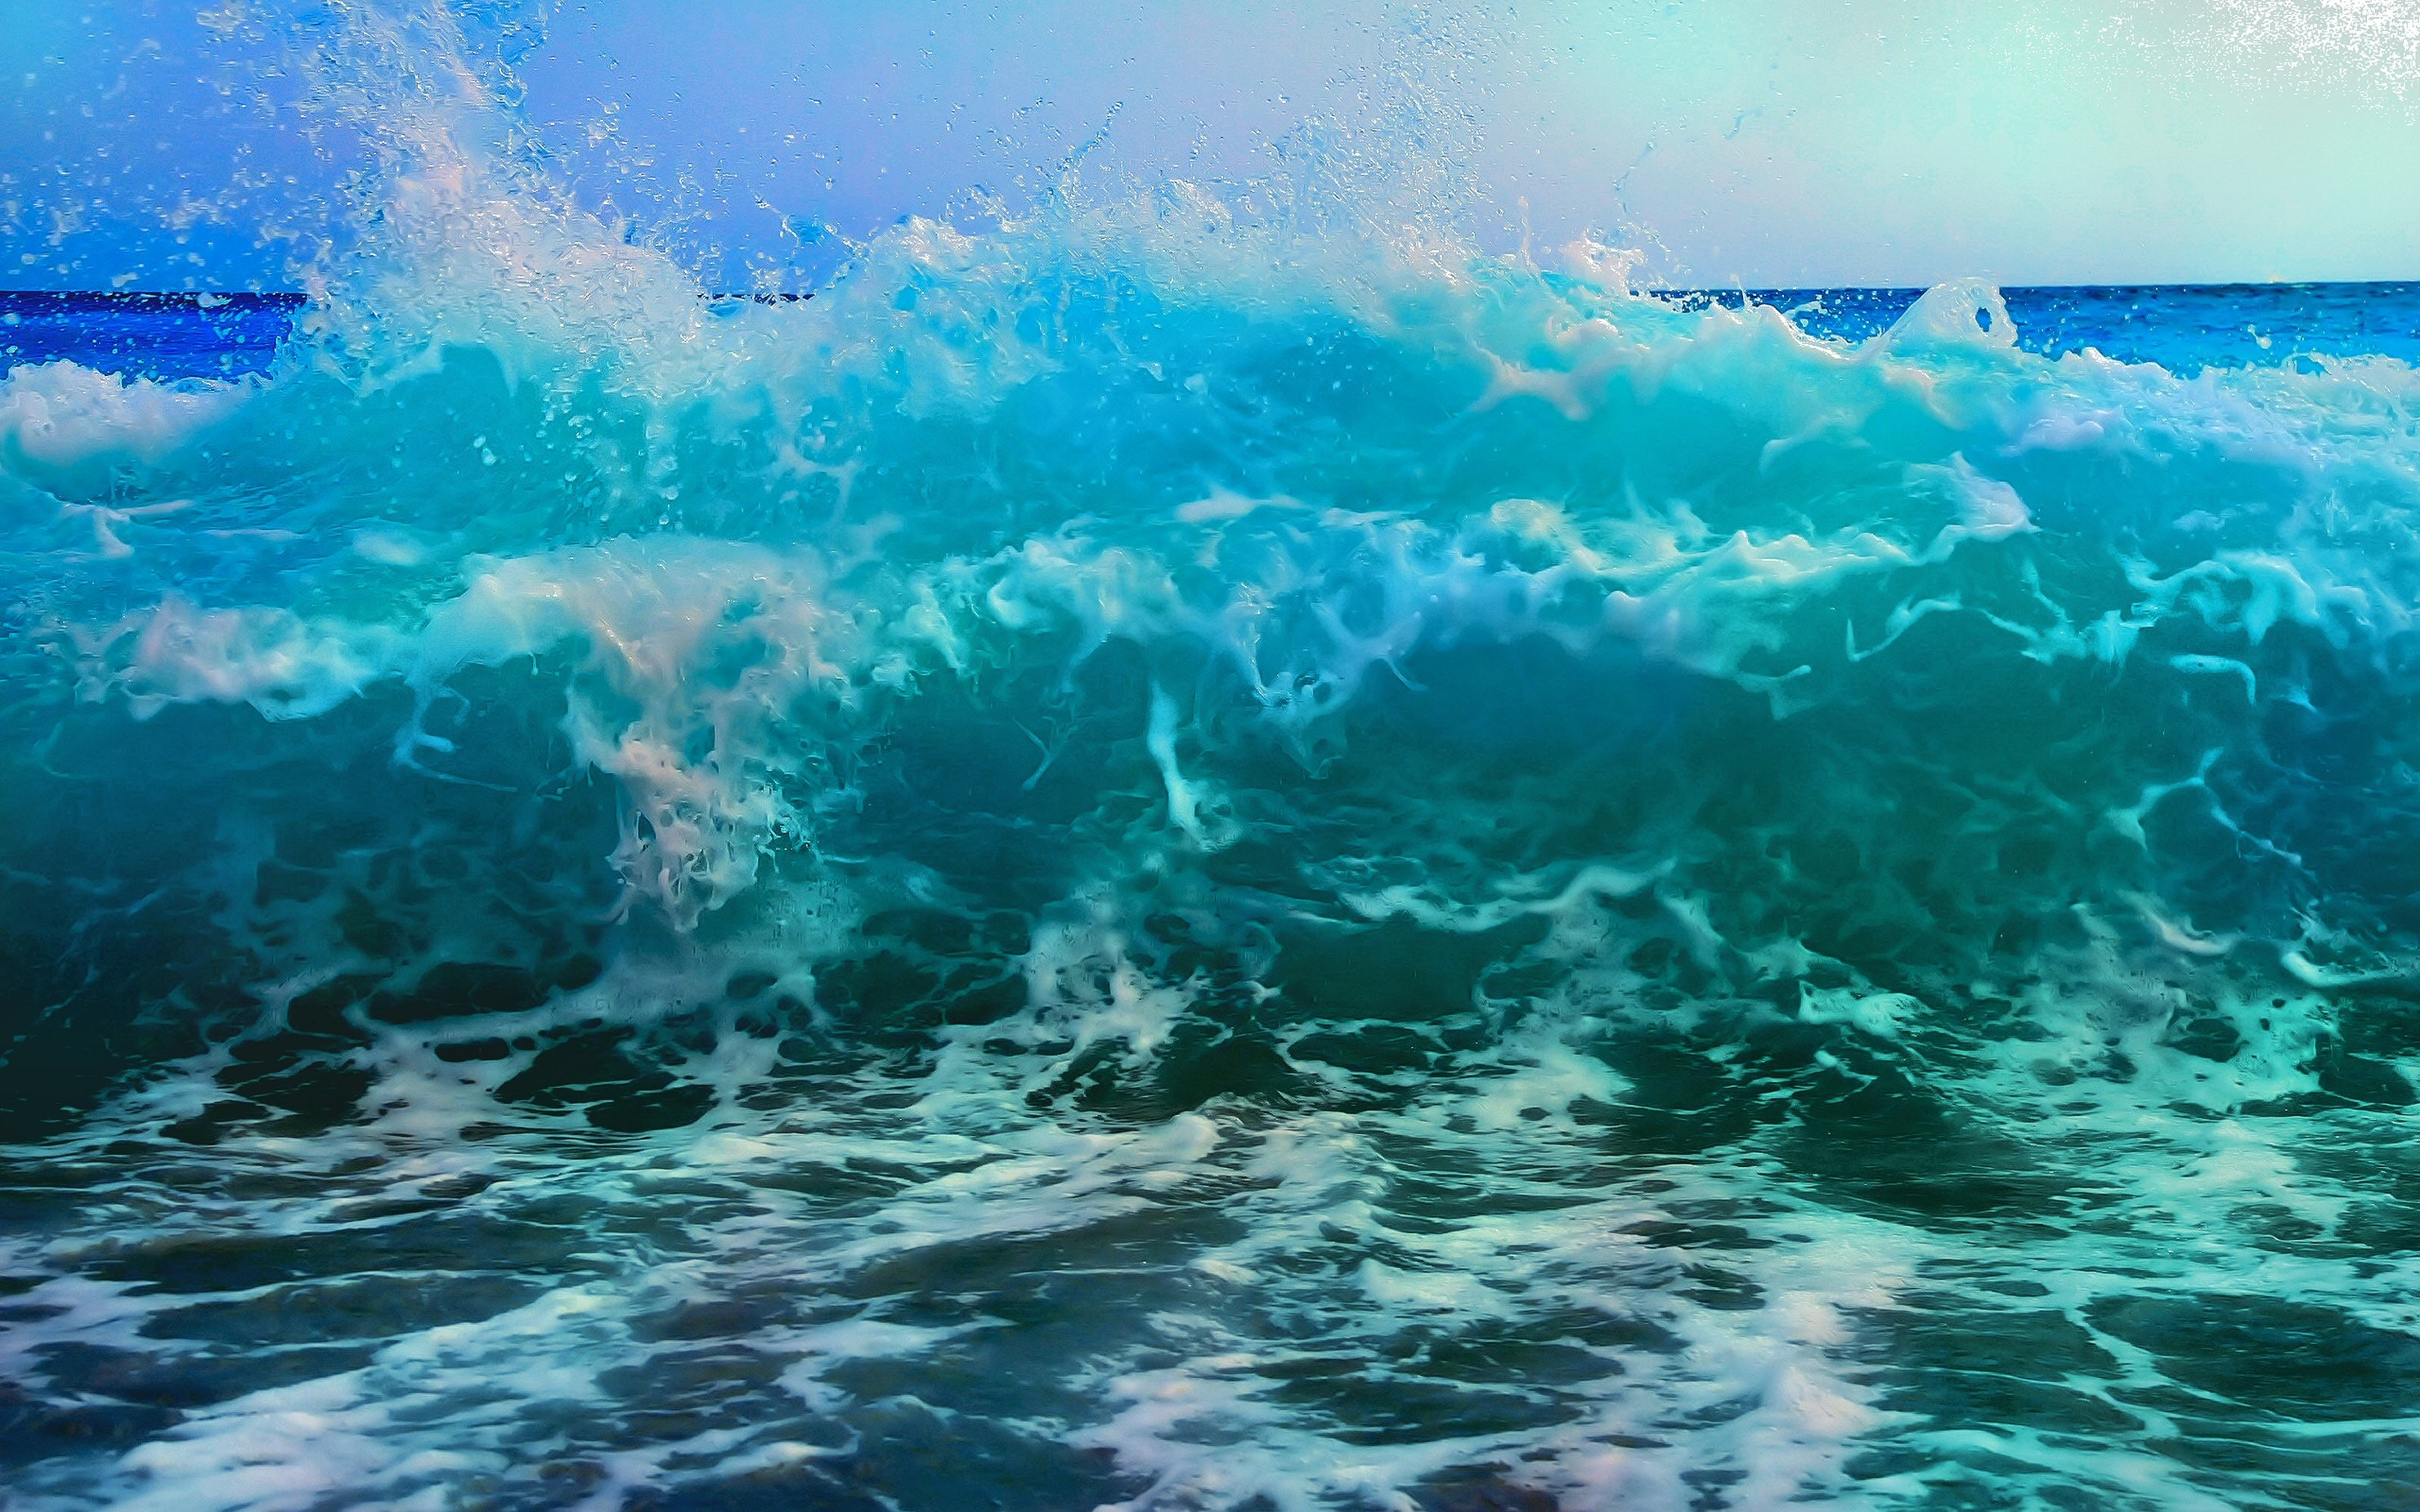 Ocean Waves Wallpaper Hd 60 Images